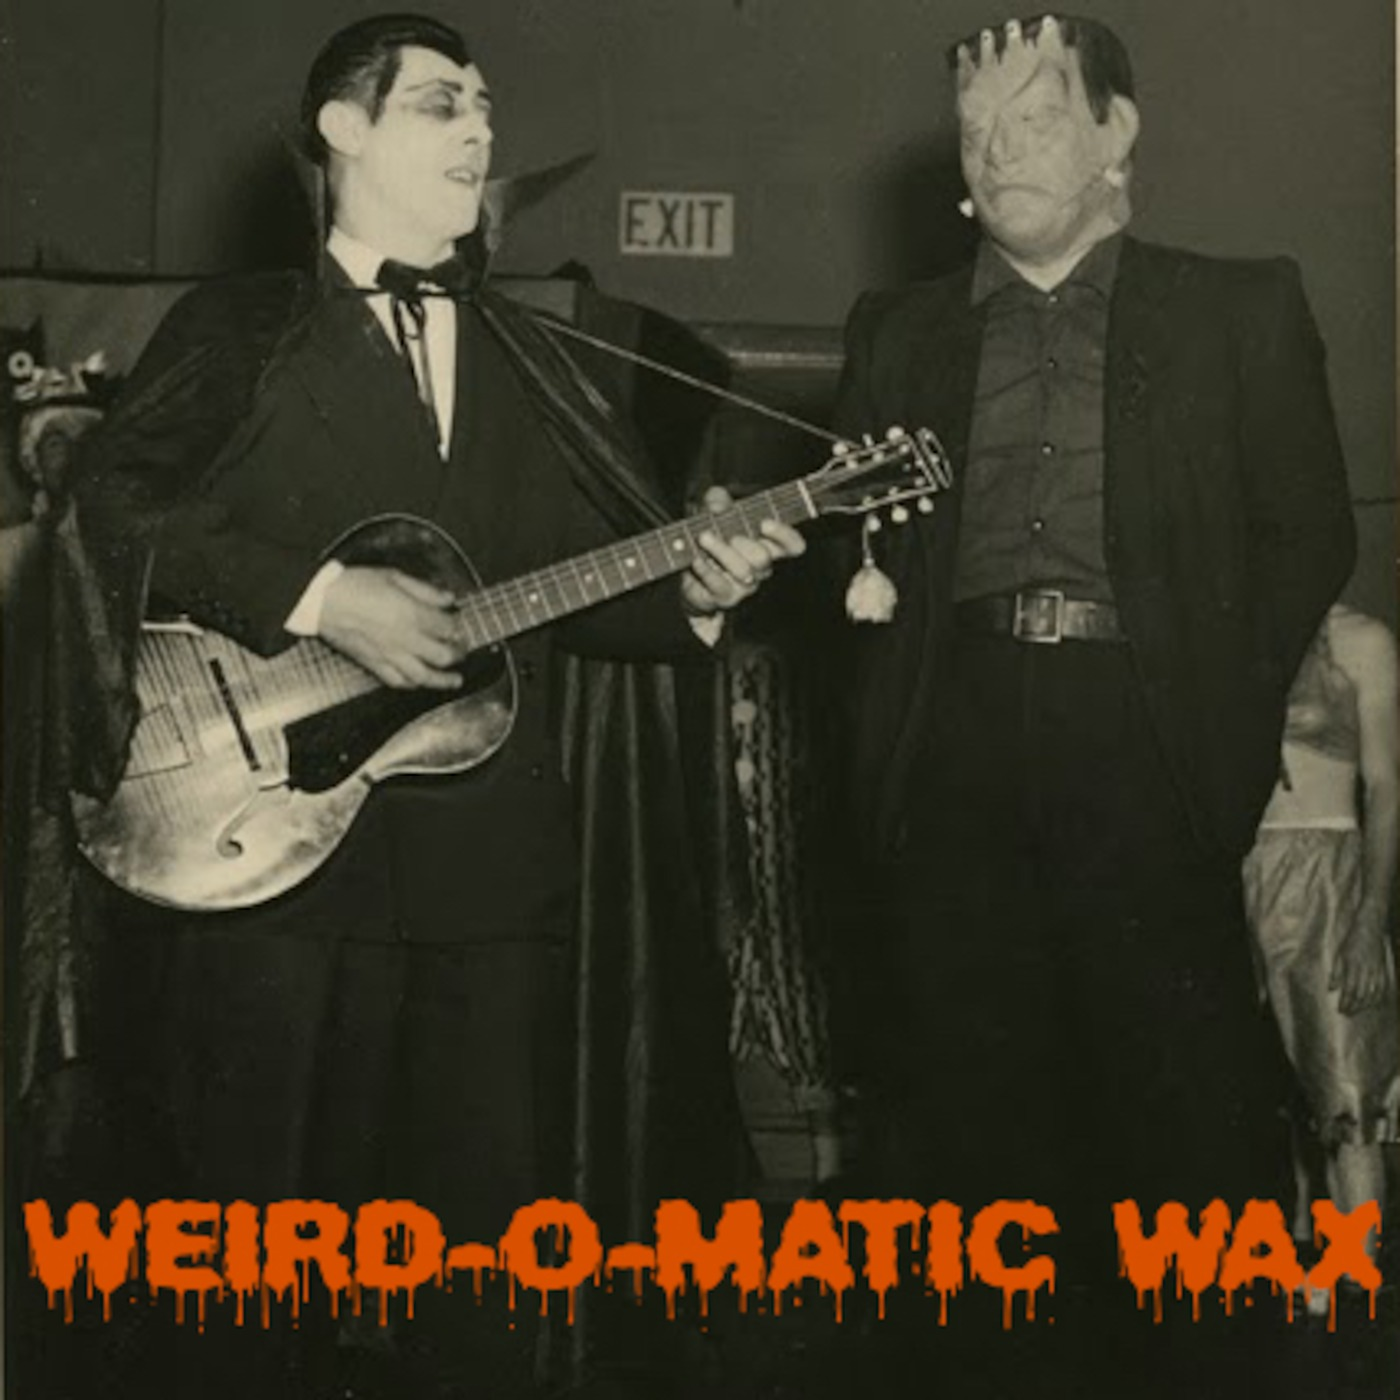 Weird-O-Matic Wax